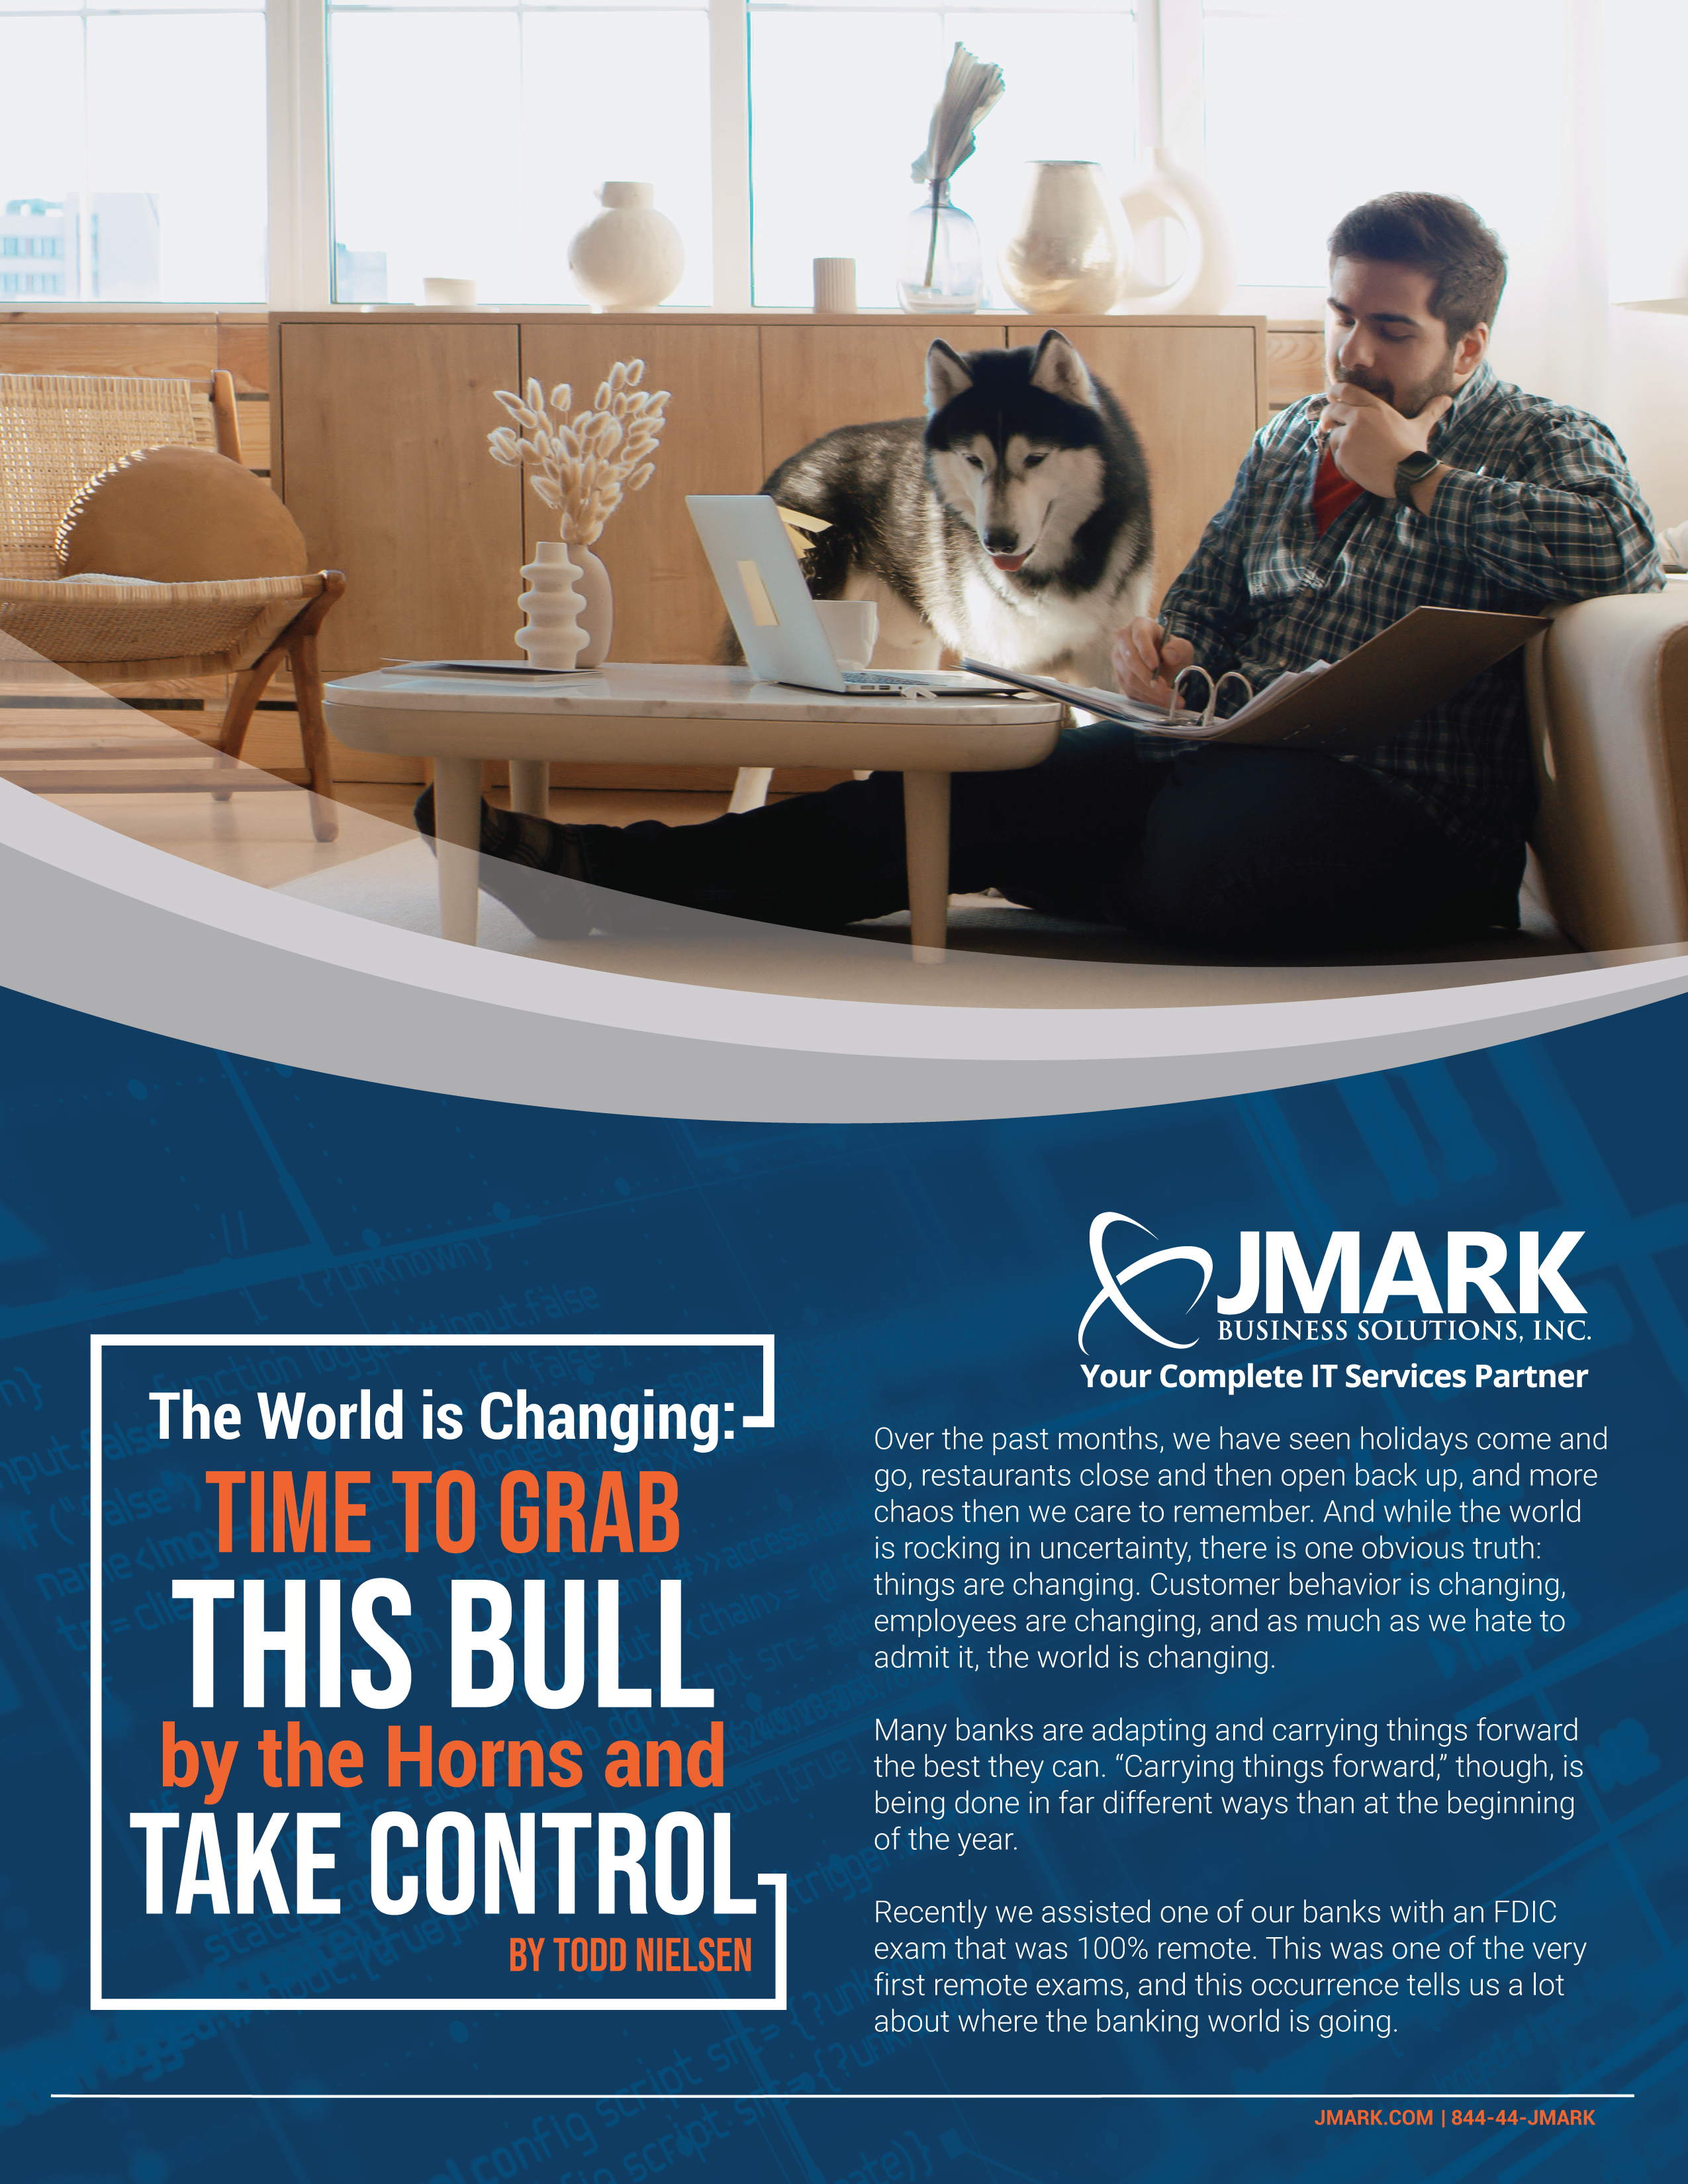 The World is Changing - Time to Grab This Bull by the Horns